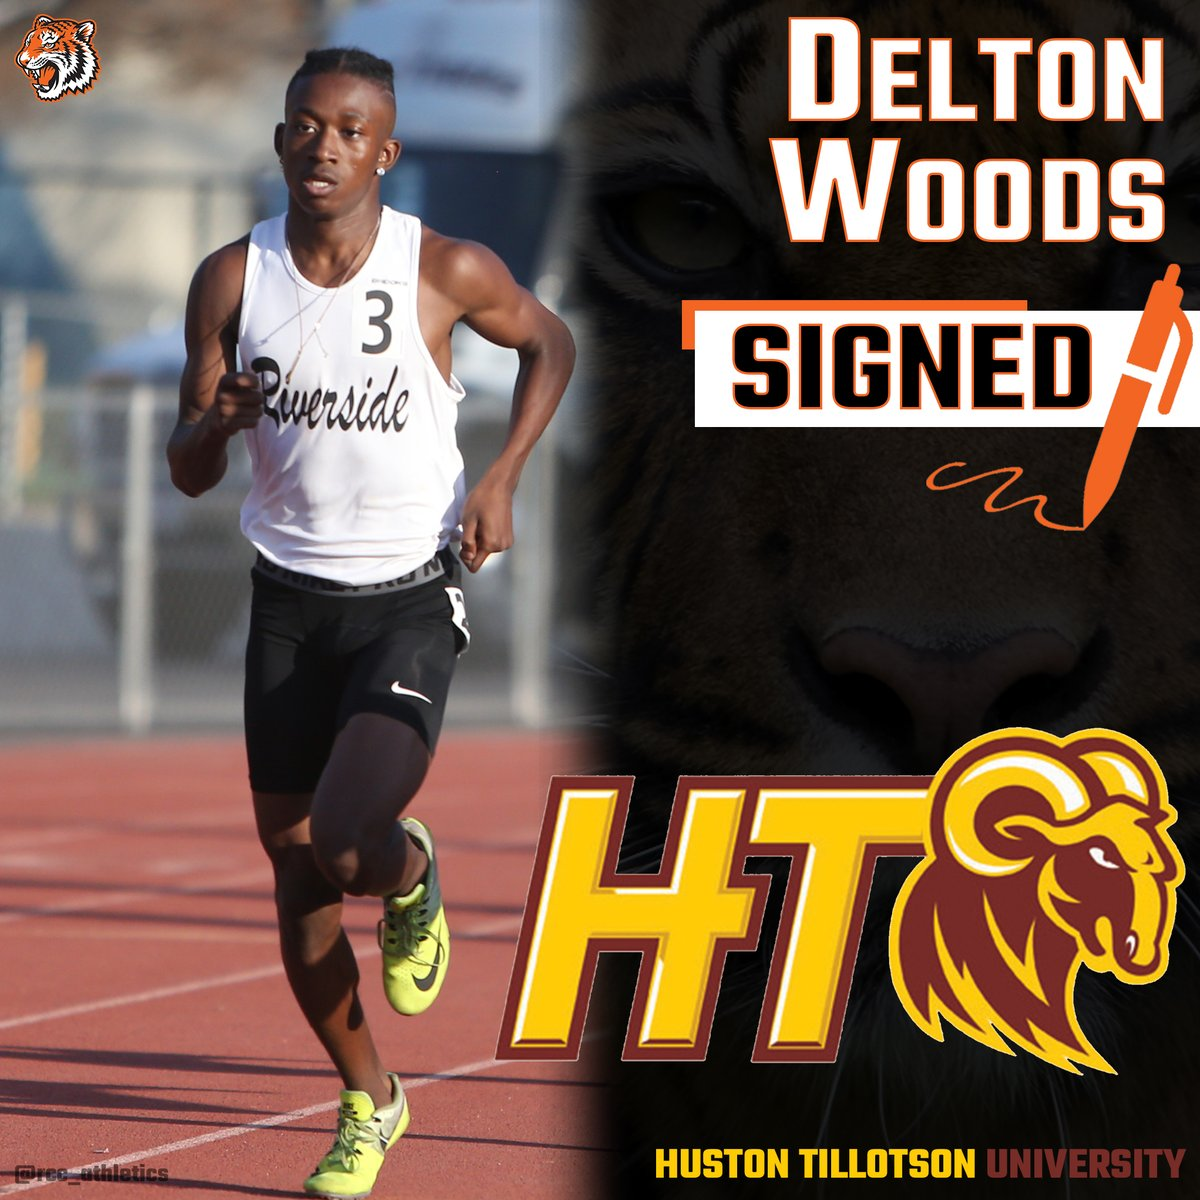 ANOTHA ONE ☝. @rcctigersmenstfxc Delton Woods inks his NLI to attend Huston TIllotson University in Texas. He will be running the 4 x 400 M Relay and 800 M. Congrats! #TheCommunitysCollege https://t.co/zWaurHrFVP